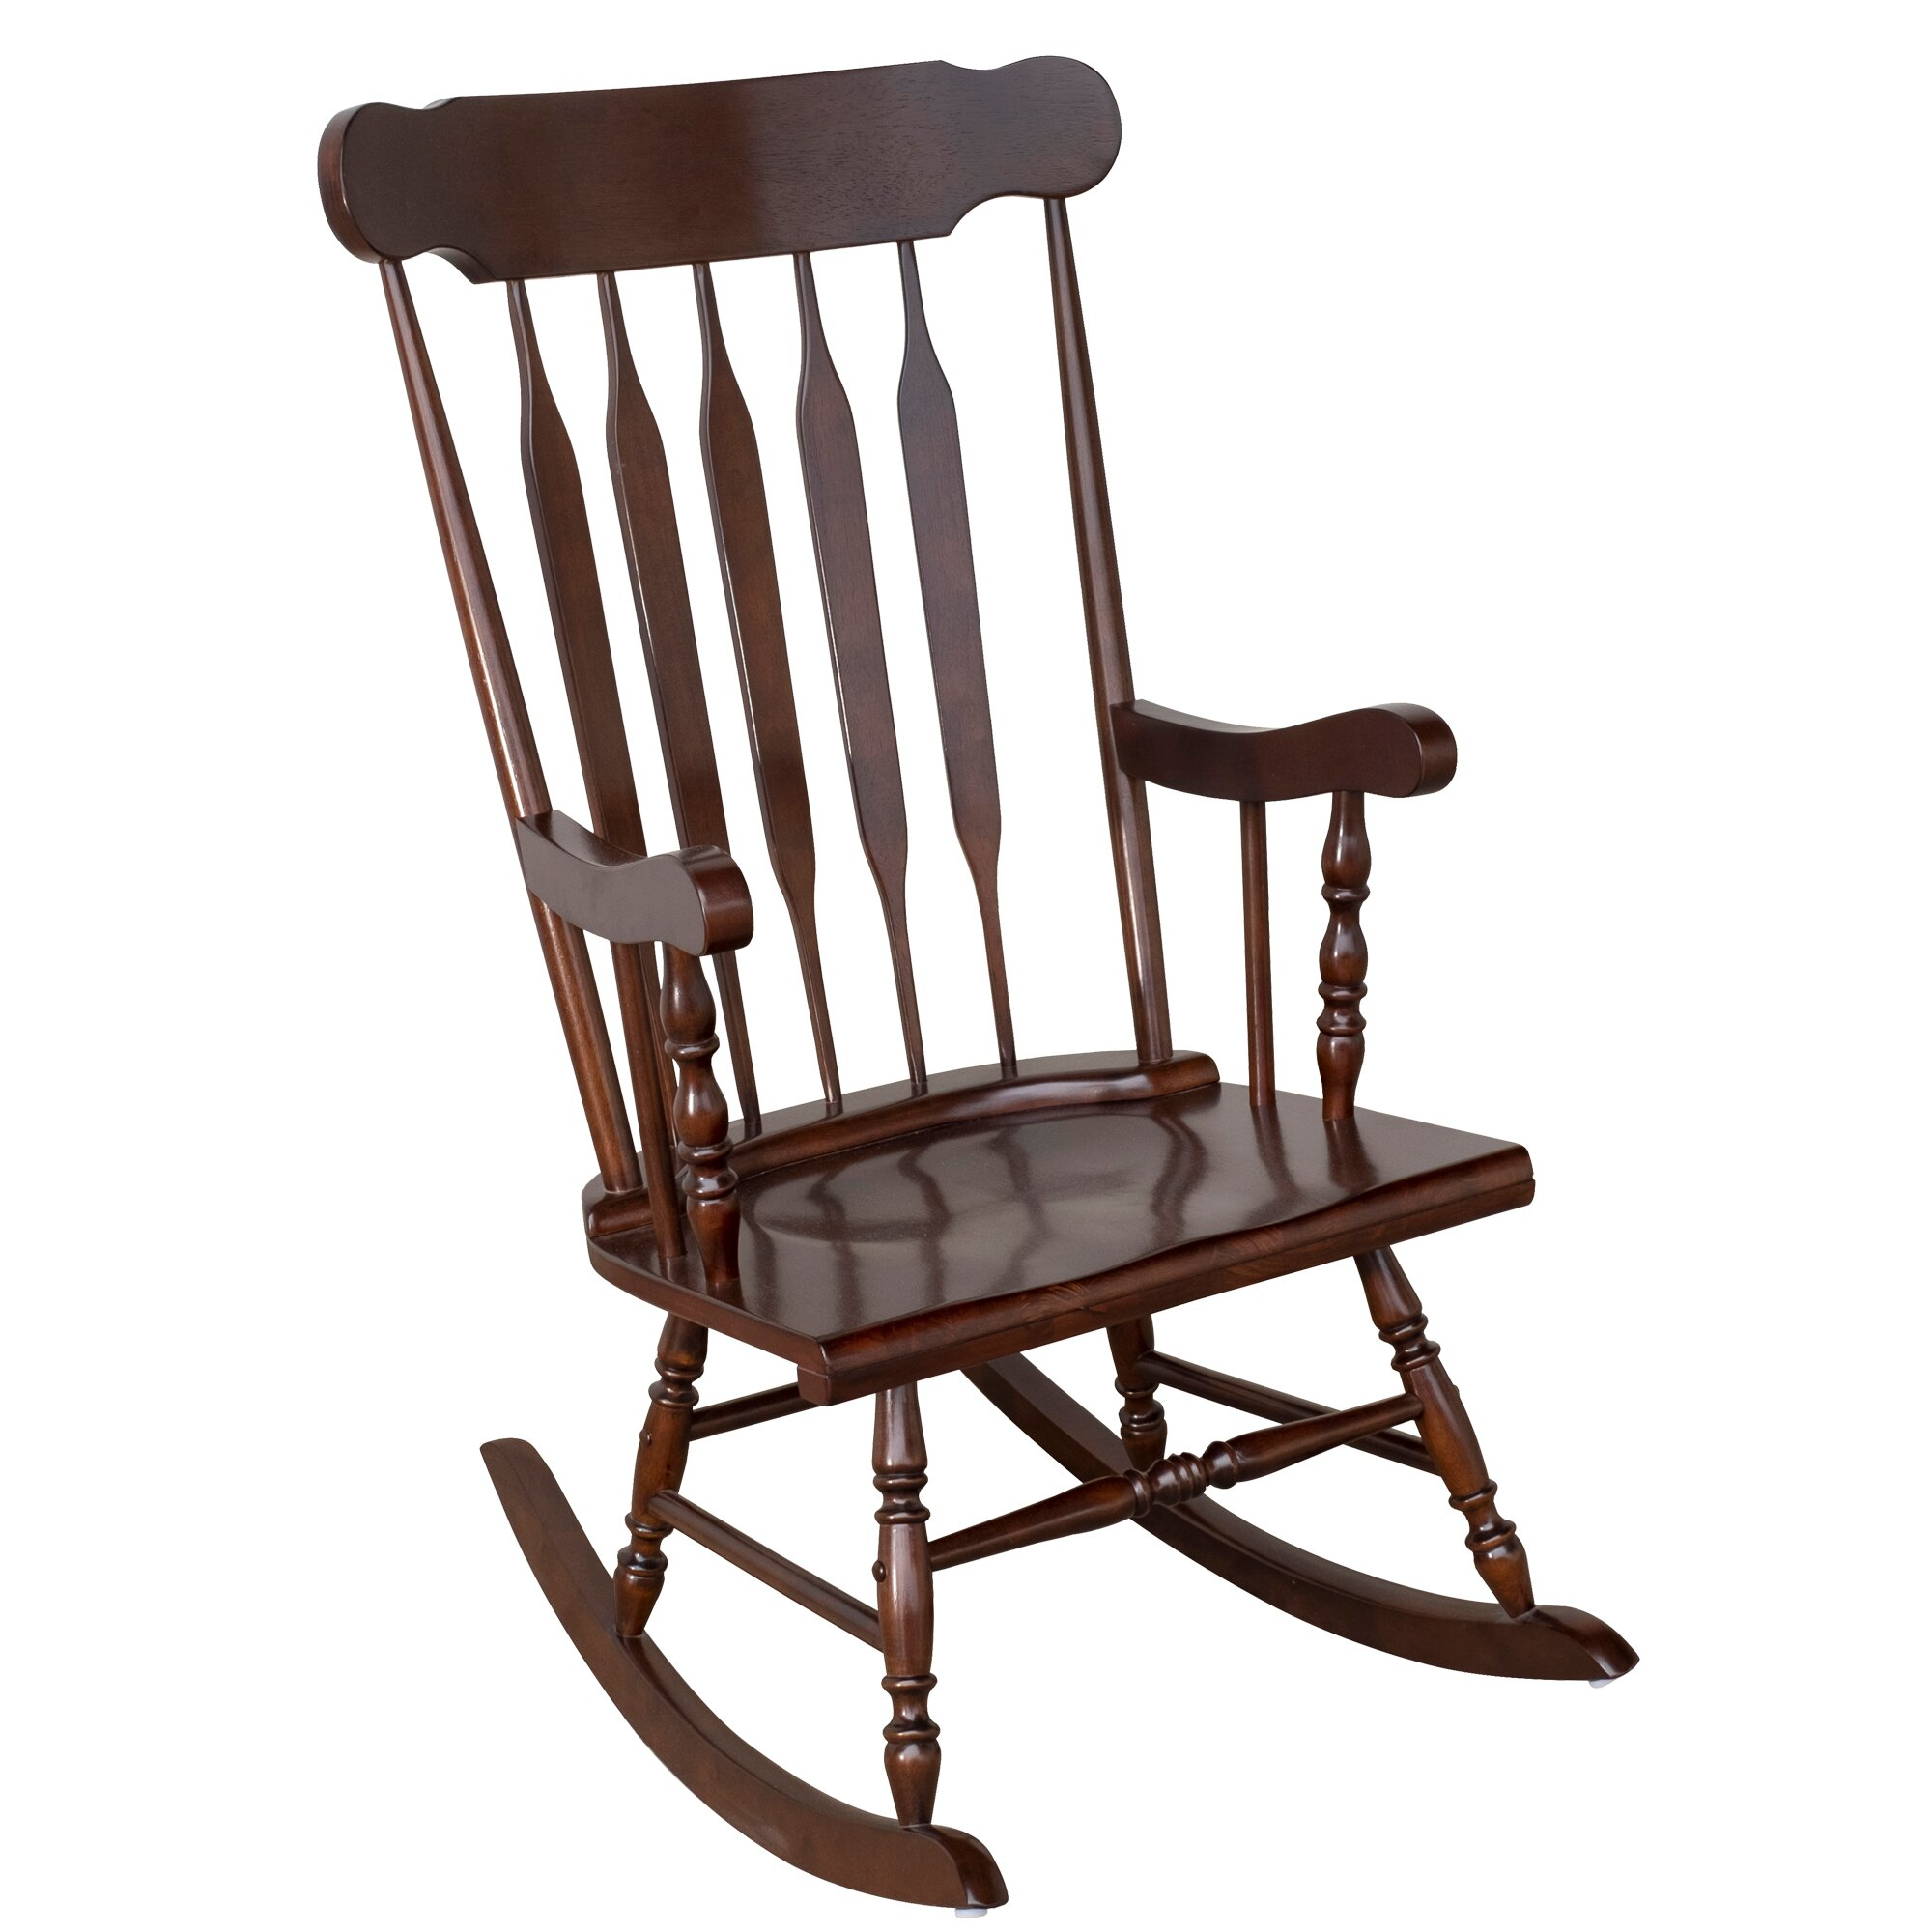 Aosom: Homcom Traditional Slat Wood Rocking Chair Indoor Porch Furniture  For Patio Living Room – Dark Brown | Rakuten With Regard To Tobacco Brown Wooden Rocking Chairs (#3 of 20)